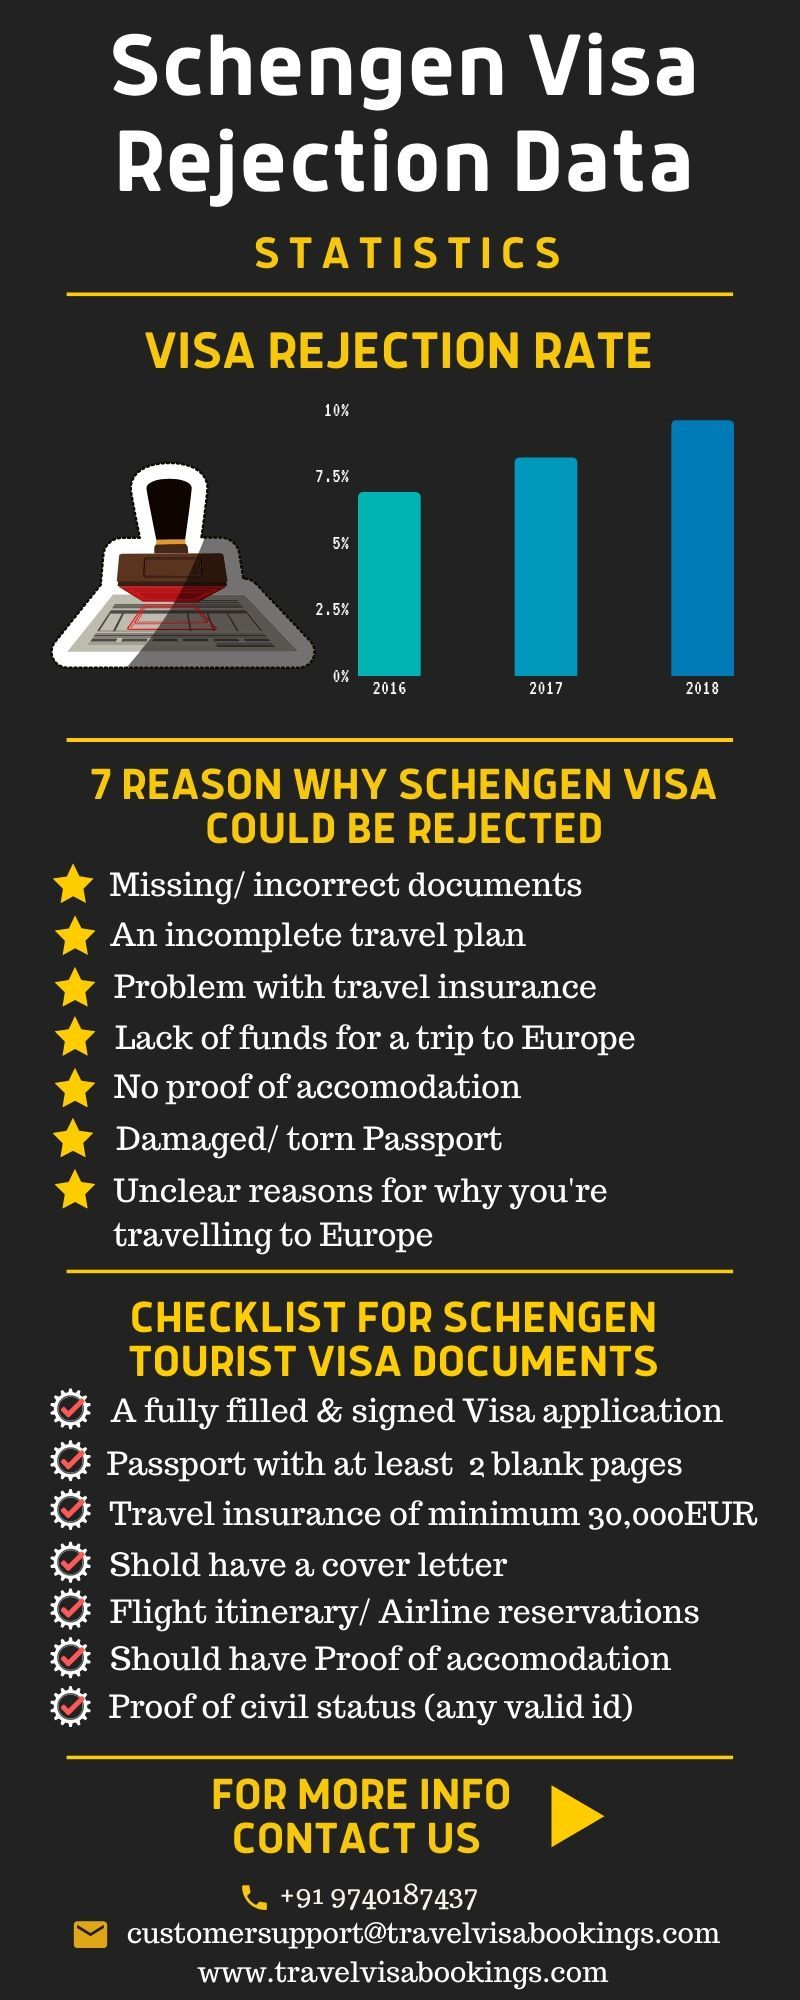 schengen visa rejection data information, entry level diesel mechanic resume modern one page template free download how do you write a cv with no experience